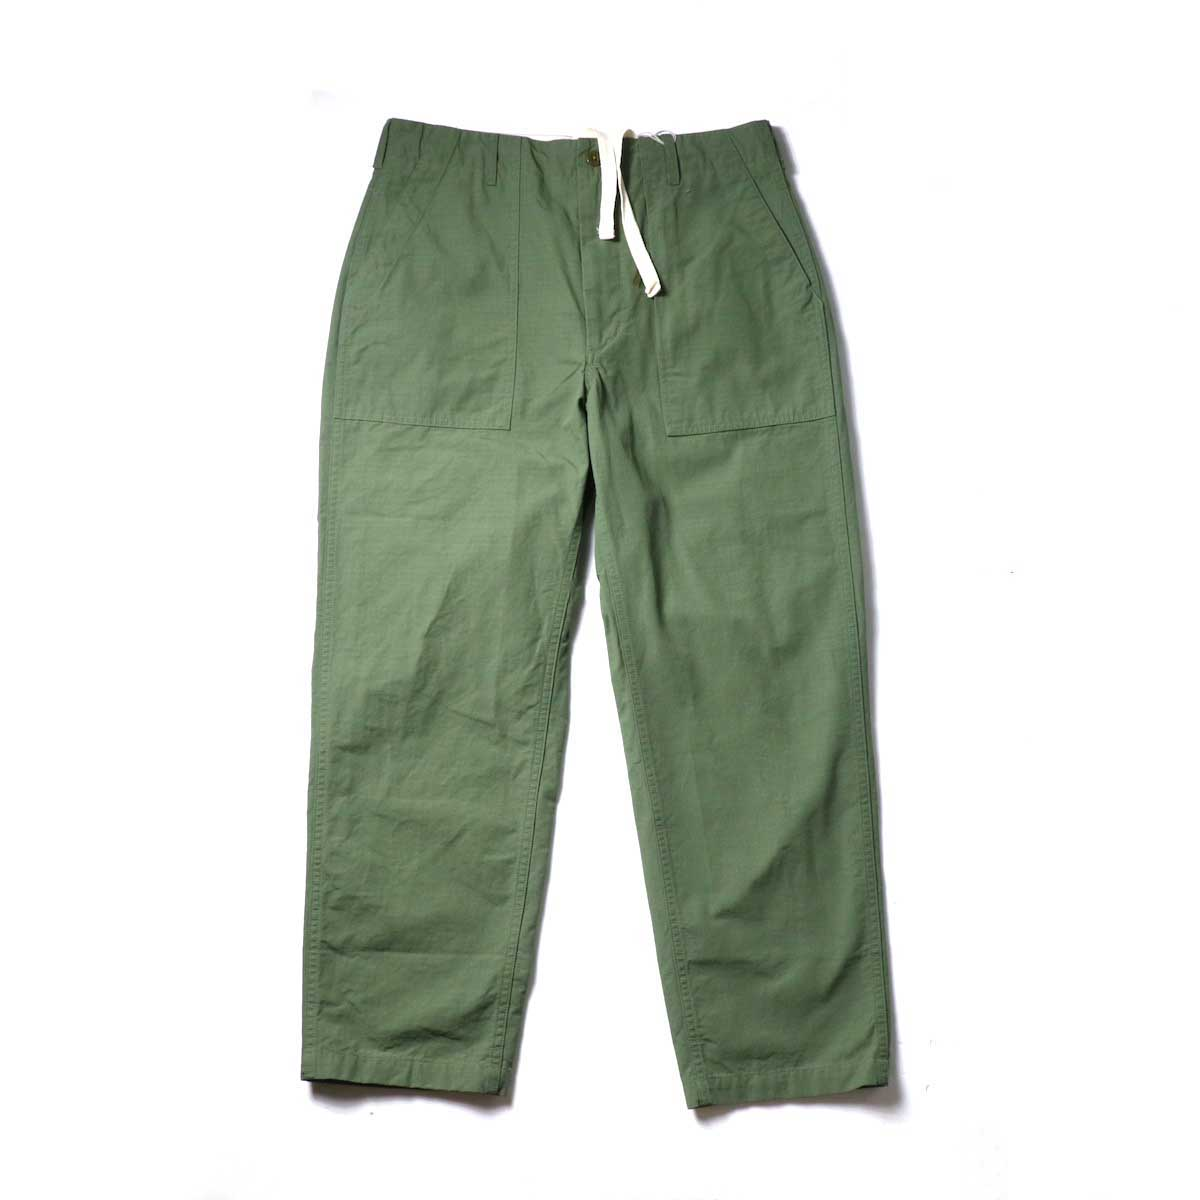 Engineered Garments / Fatigue Pant - Cotton Ripstop (Olive)正面